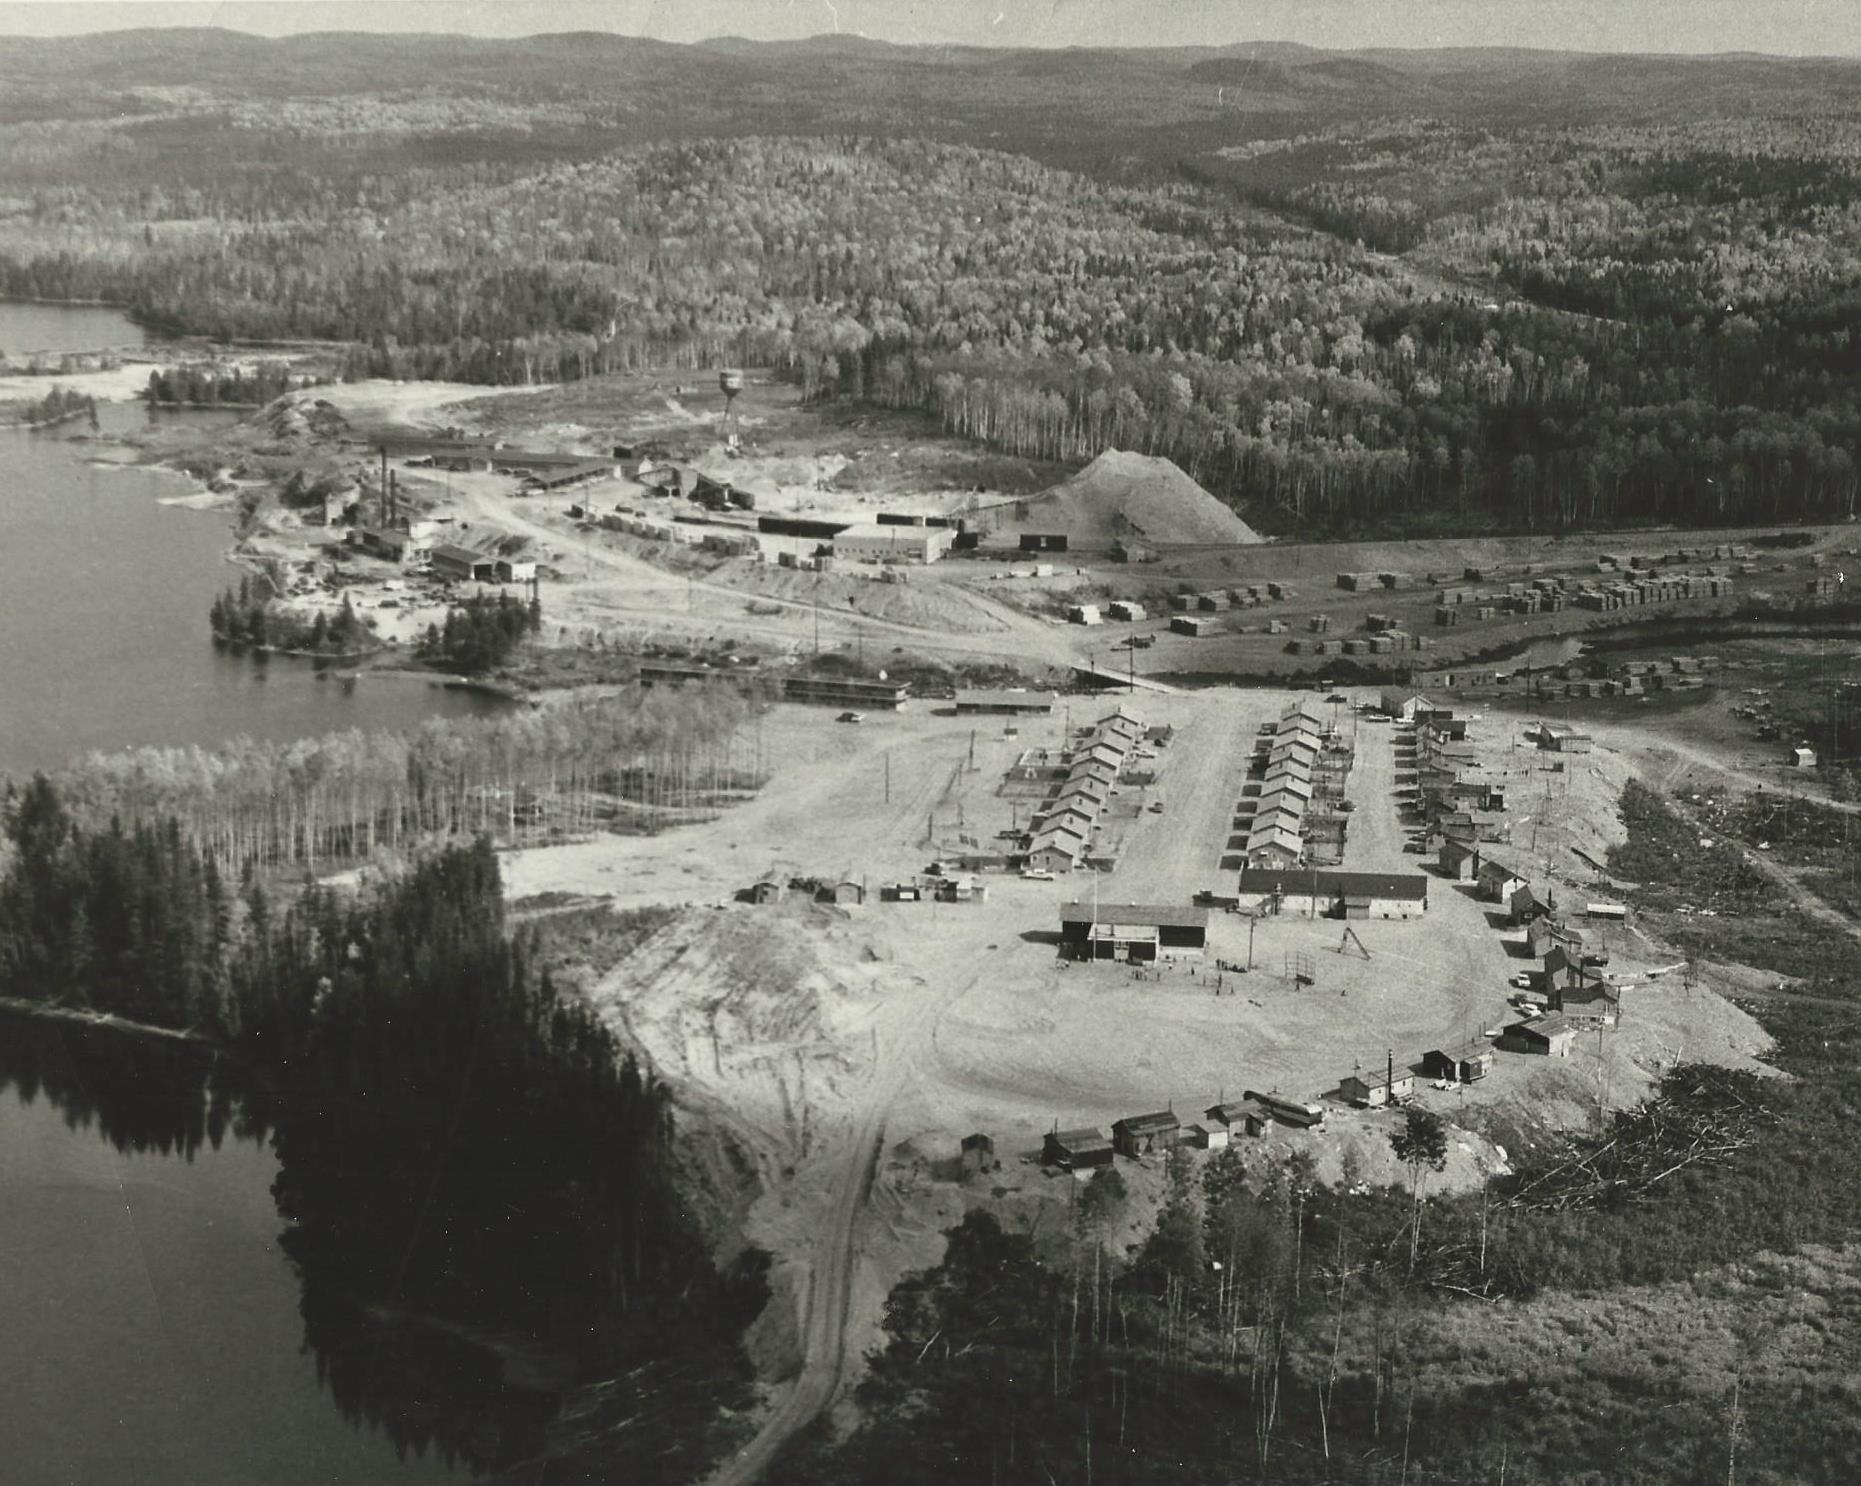 Aerial view of Dubreuilville in 1963